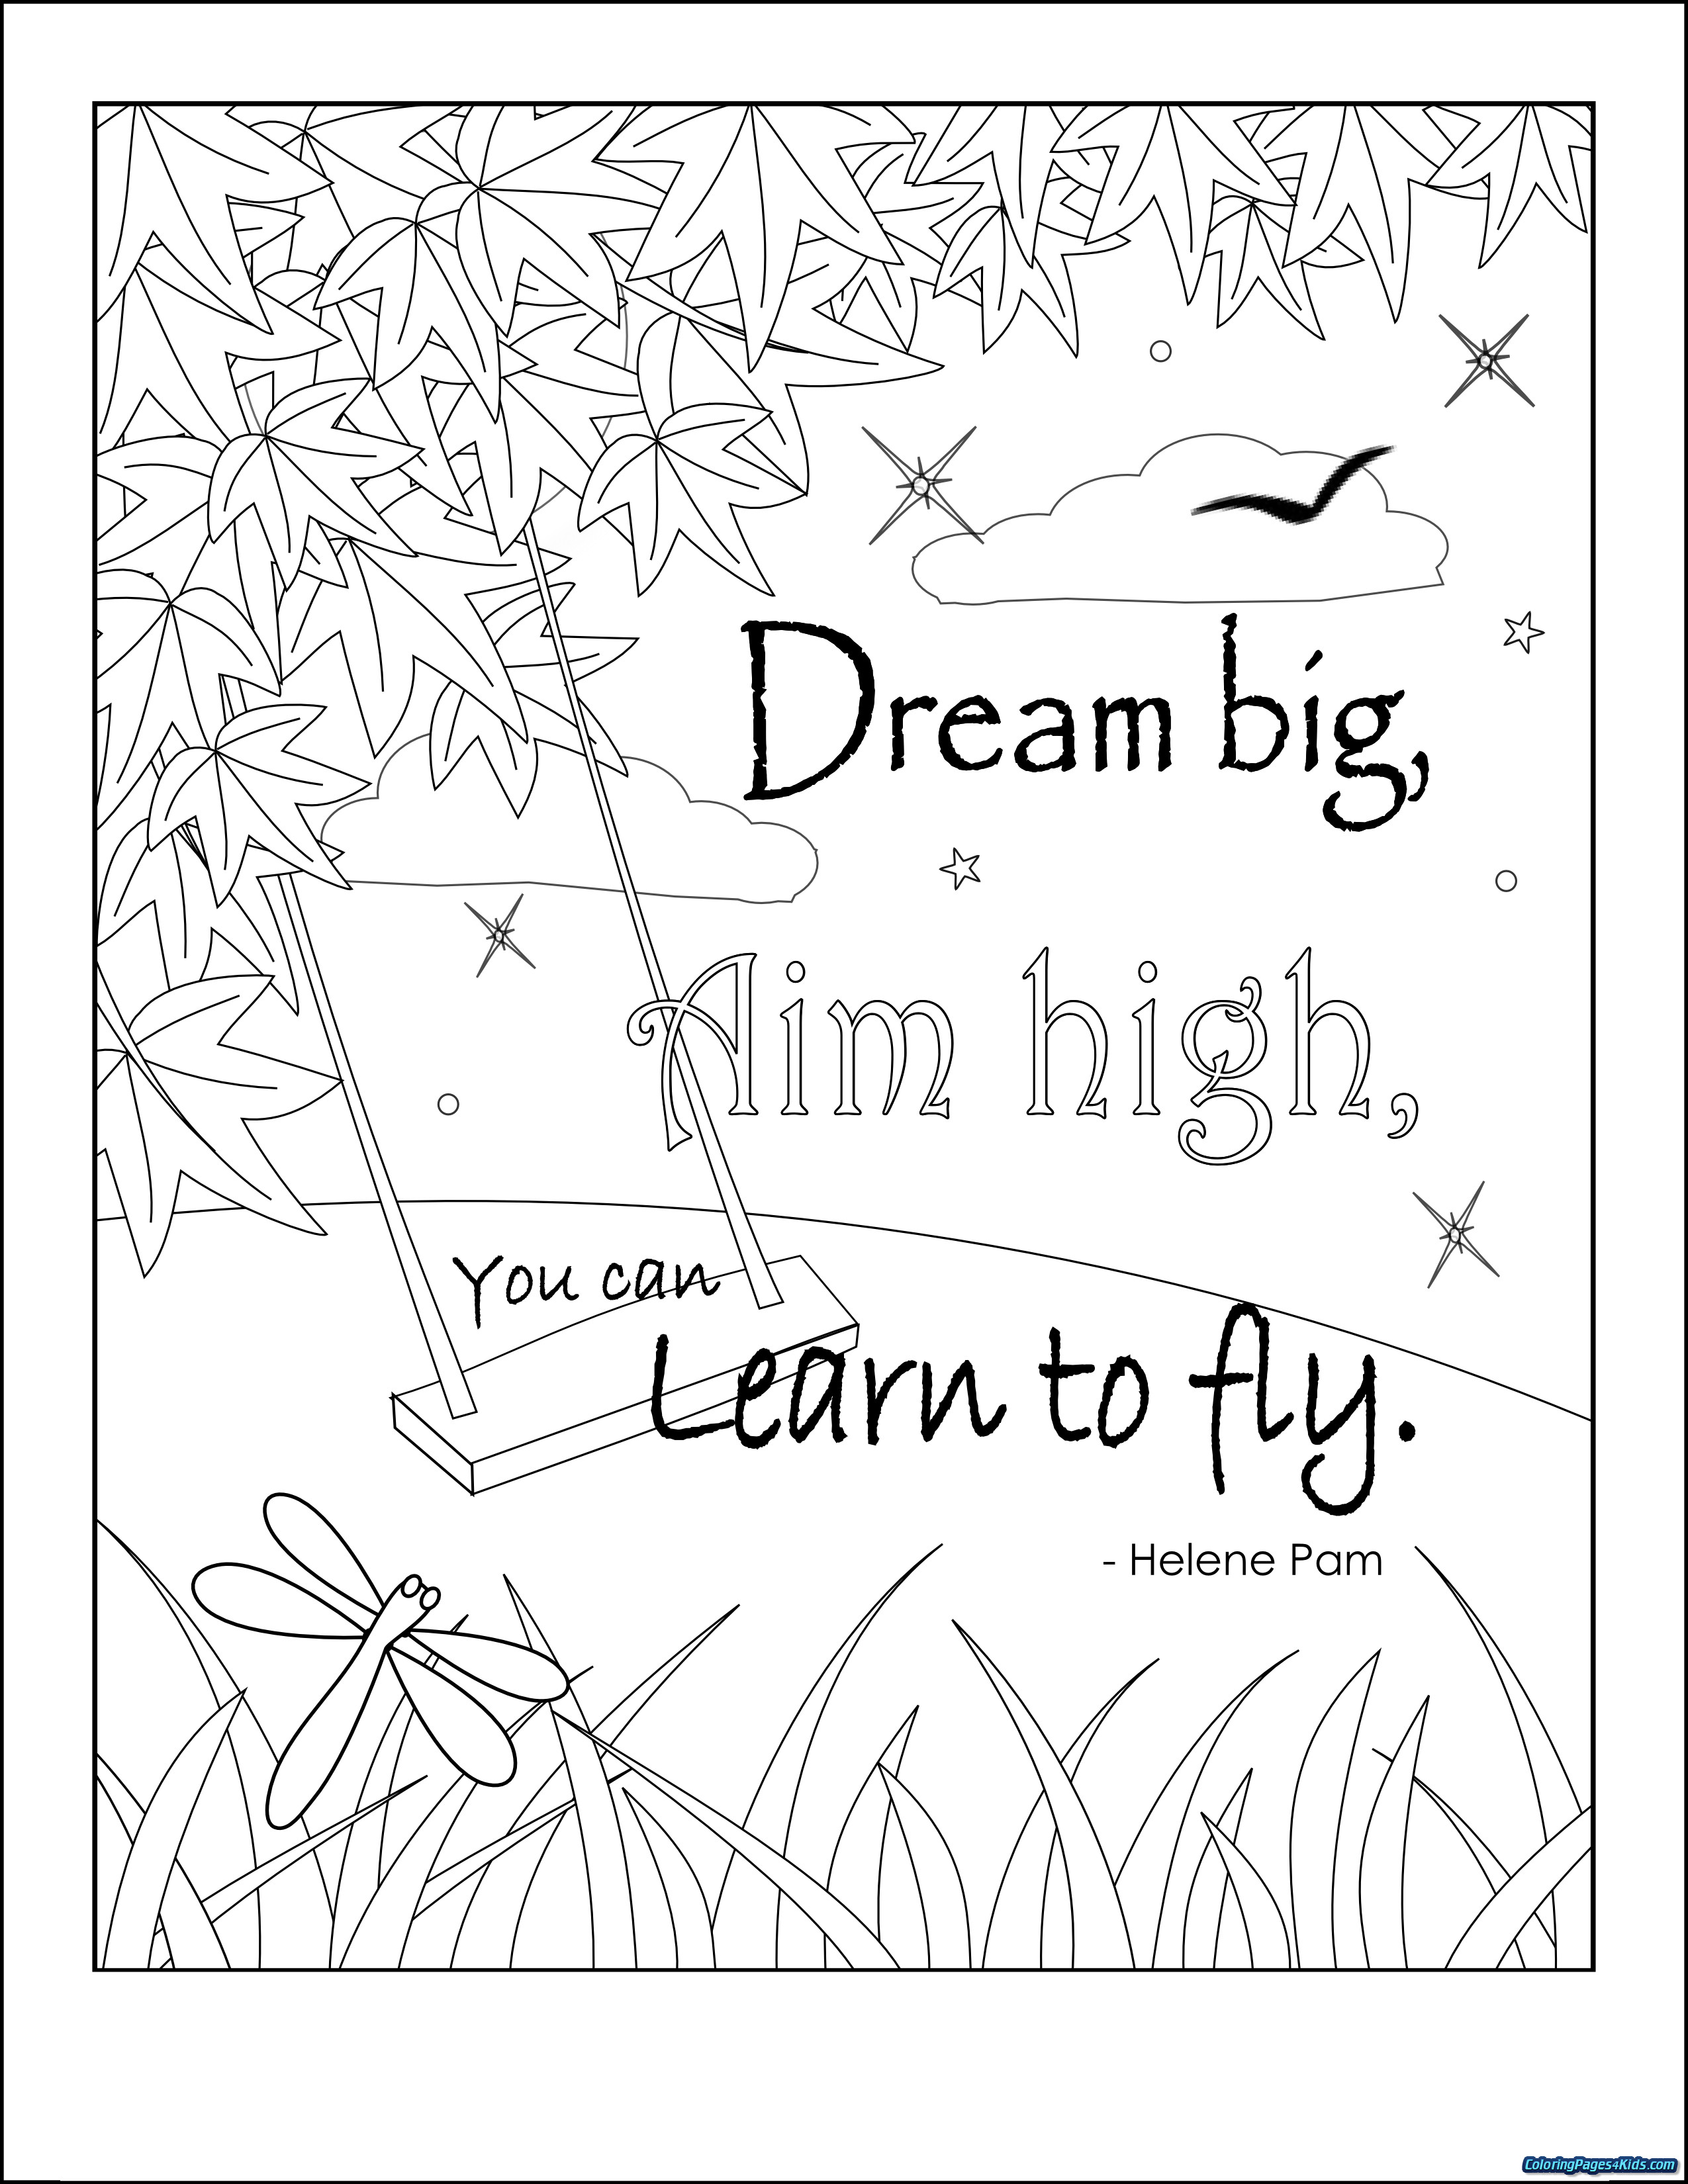 Best ideas about Free Coloring Sheets On Gratutude . Save or Pin inspirational quotes coloring pages Now.